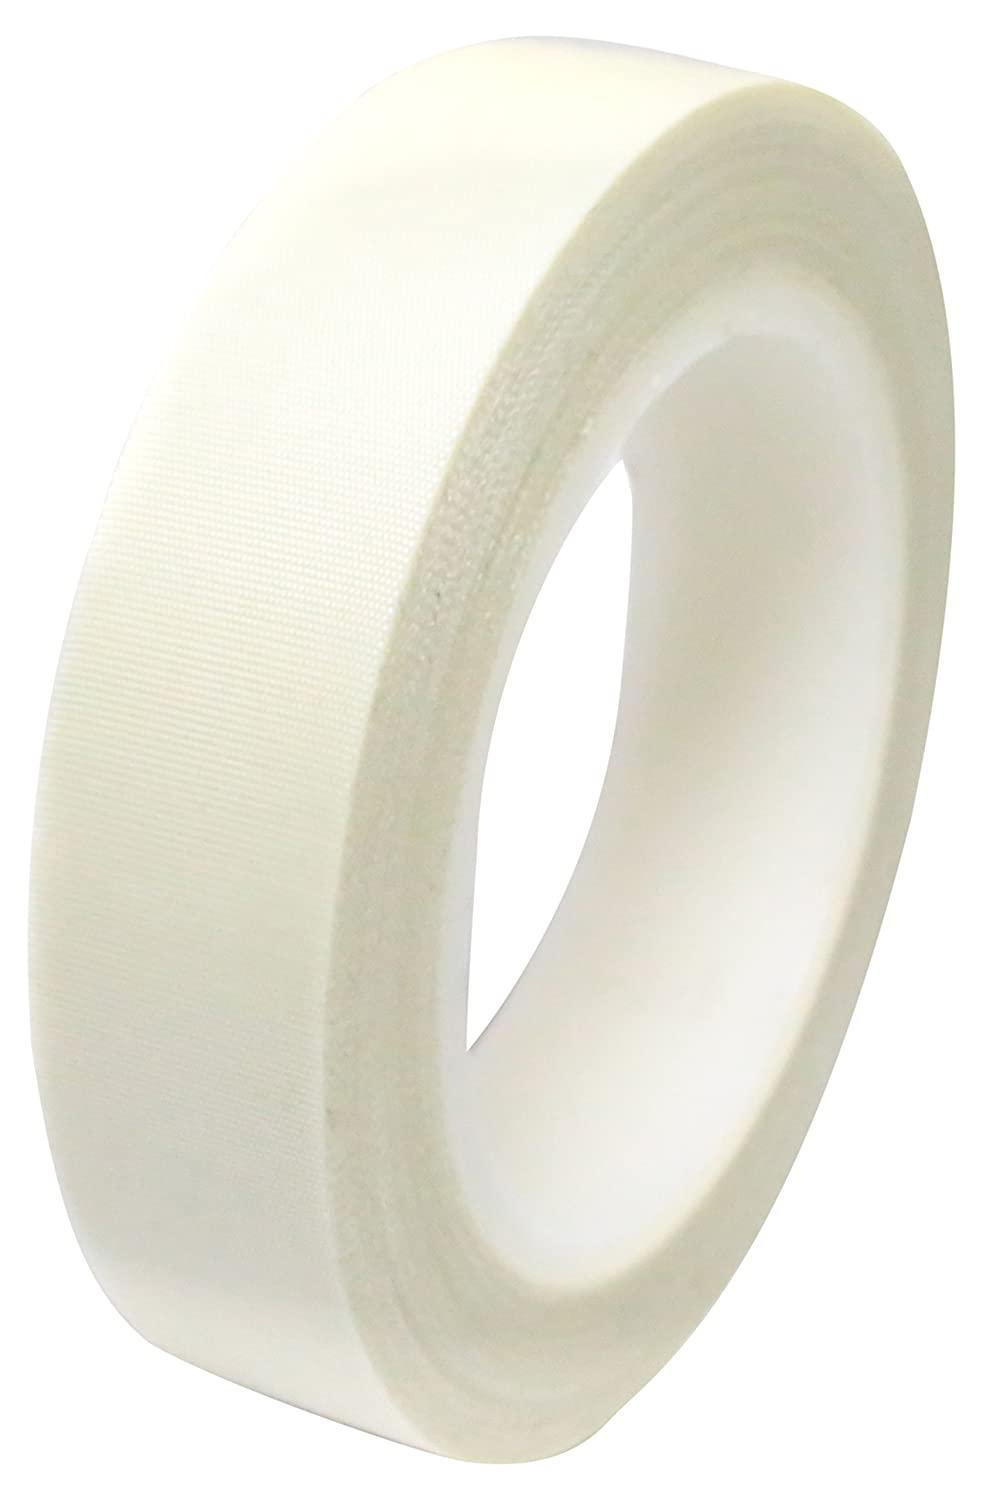 CS Hyde 17-FibGX Fiberglass Tape with Silicone Adhesive 12.25 x 36 Yards